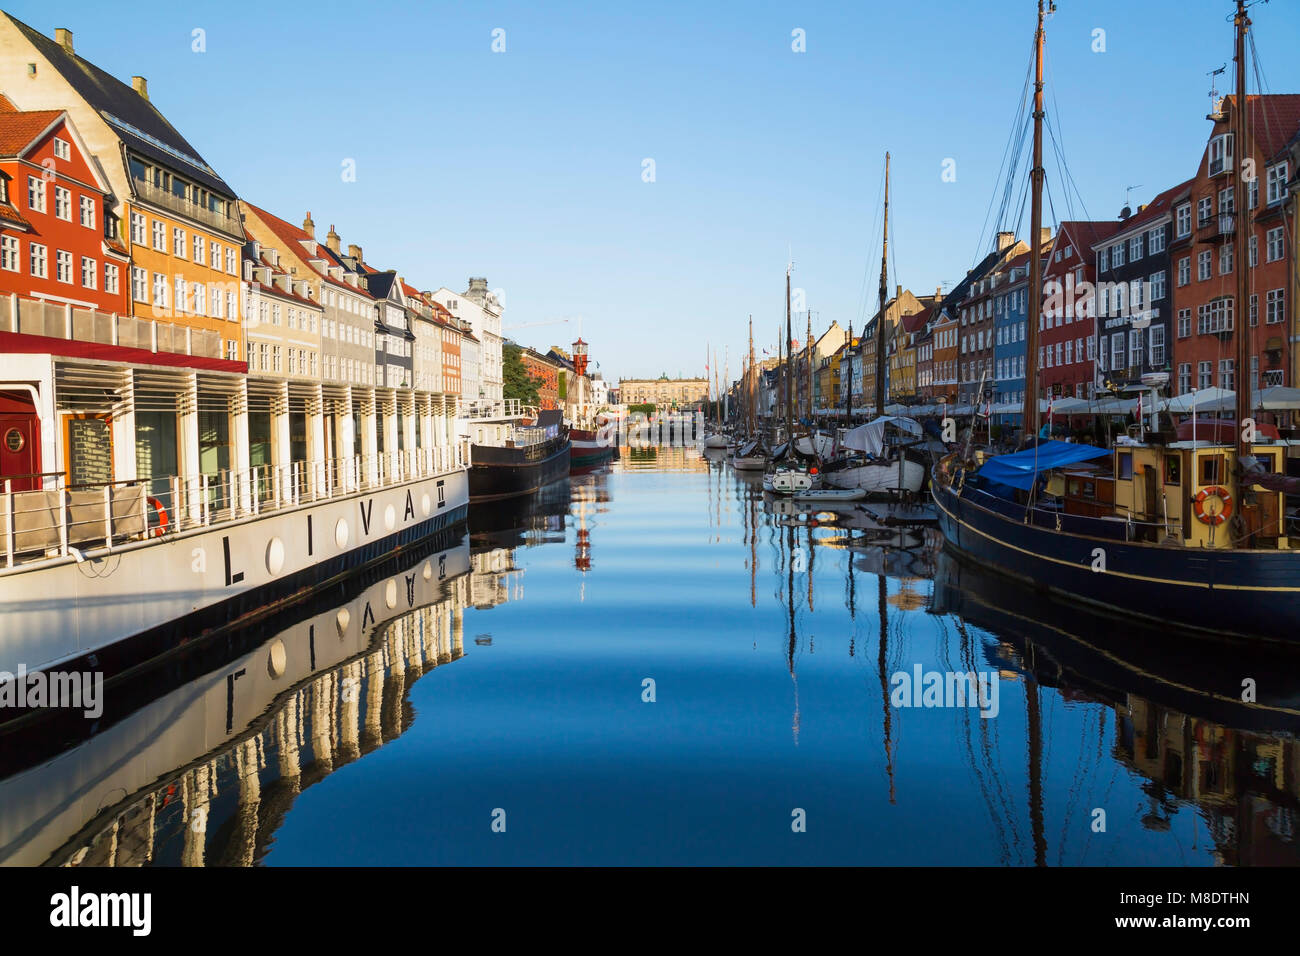 Moored restaurant boat and colourful 17th century town houses on Nyhavn canal, Copenhagen, Denmark - Stock Image